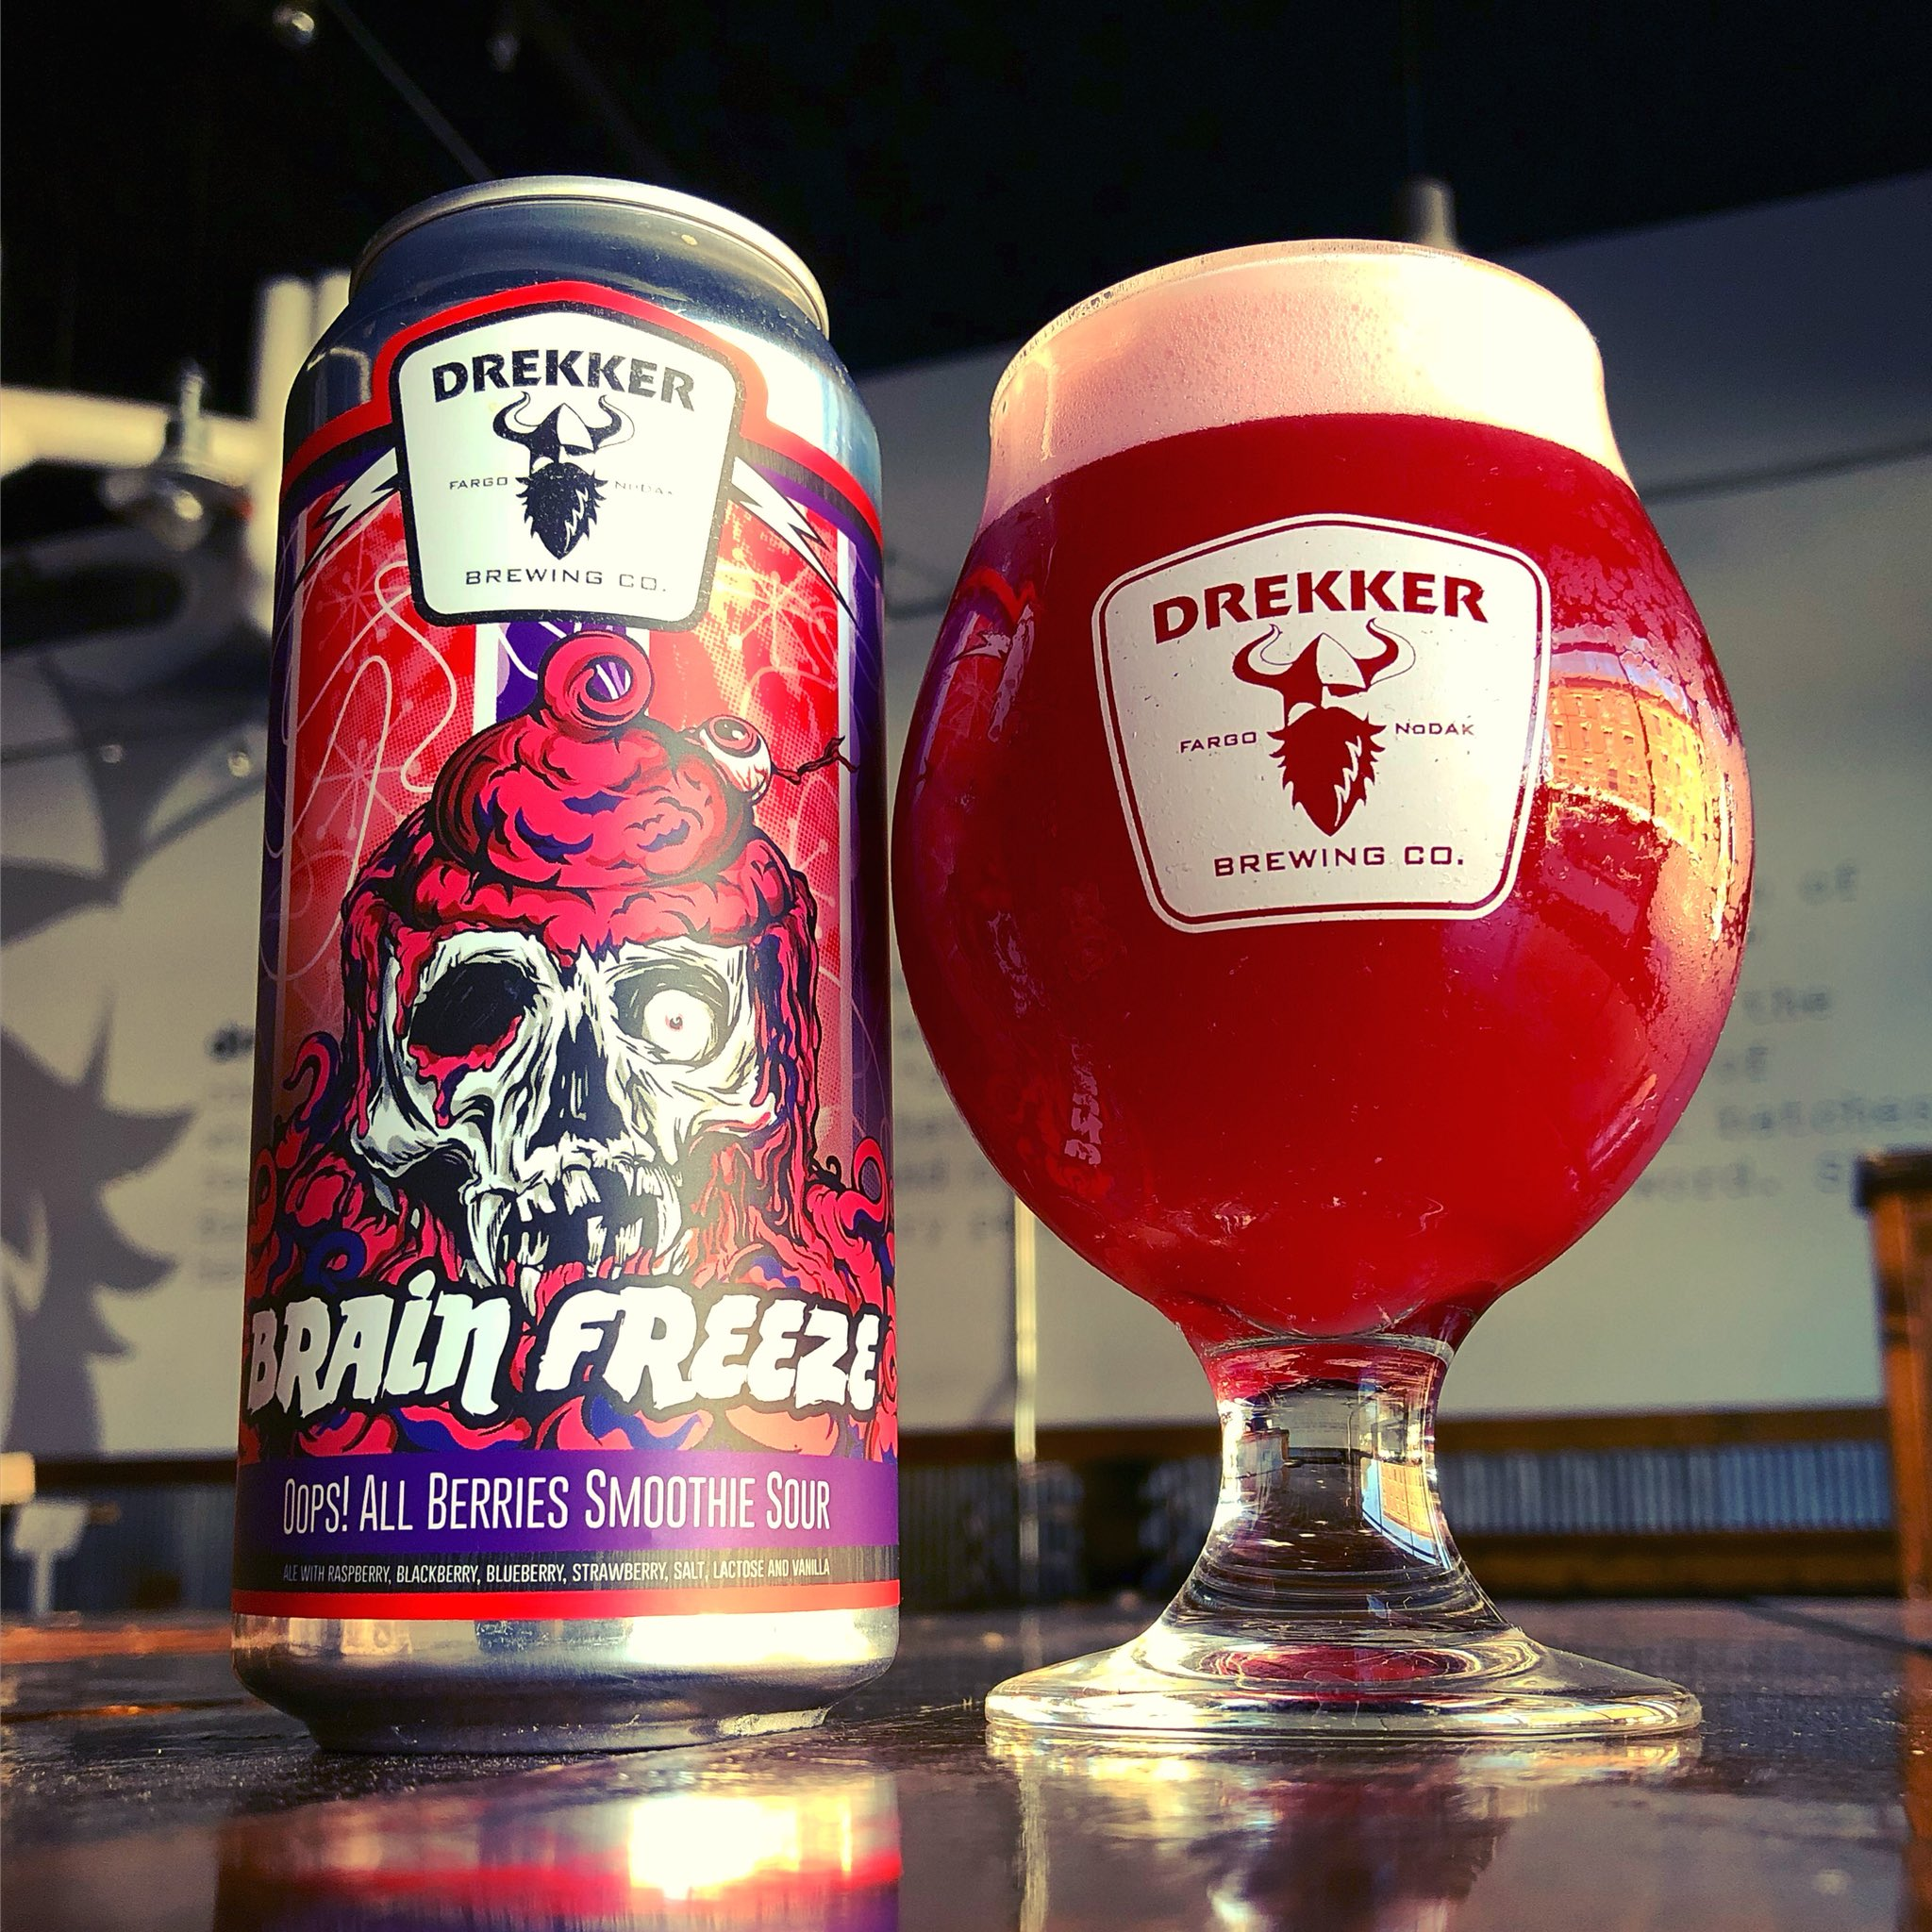 Drekker Brewing On Twitter Double Can Release Friday At Noon First Up Is Oops All Berries Brain Freeze Smoothie Sour Loaded Up With Blueberry Blackberry Raspberry Strawberry And Tastes About As Good As It Looks Https T Co Xsk4ufz4qy Overflowing with red, blue, green and purple pieces, it's never been tastier to snack. all berries brain freeze smoothie sour